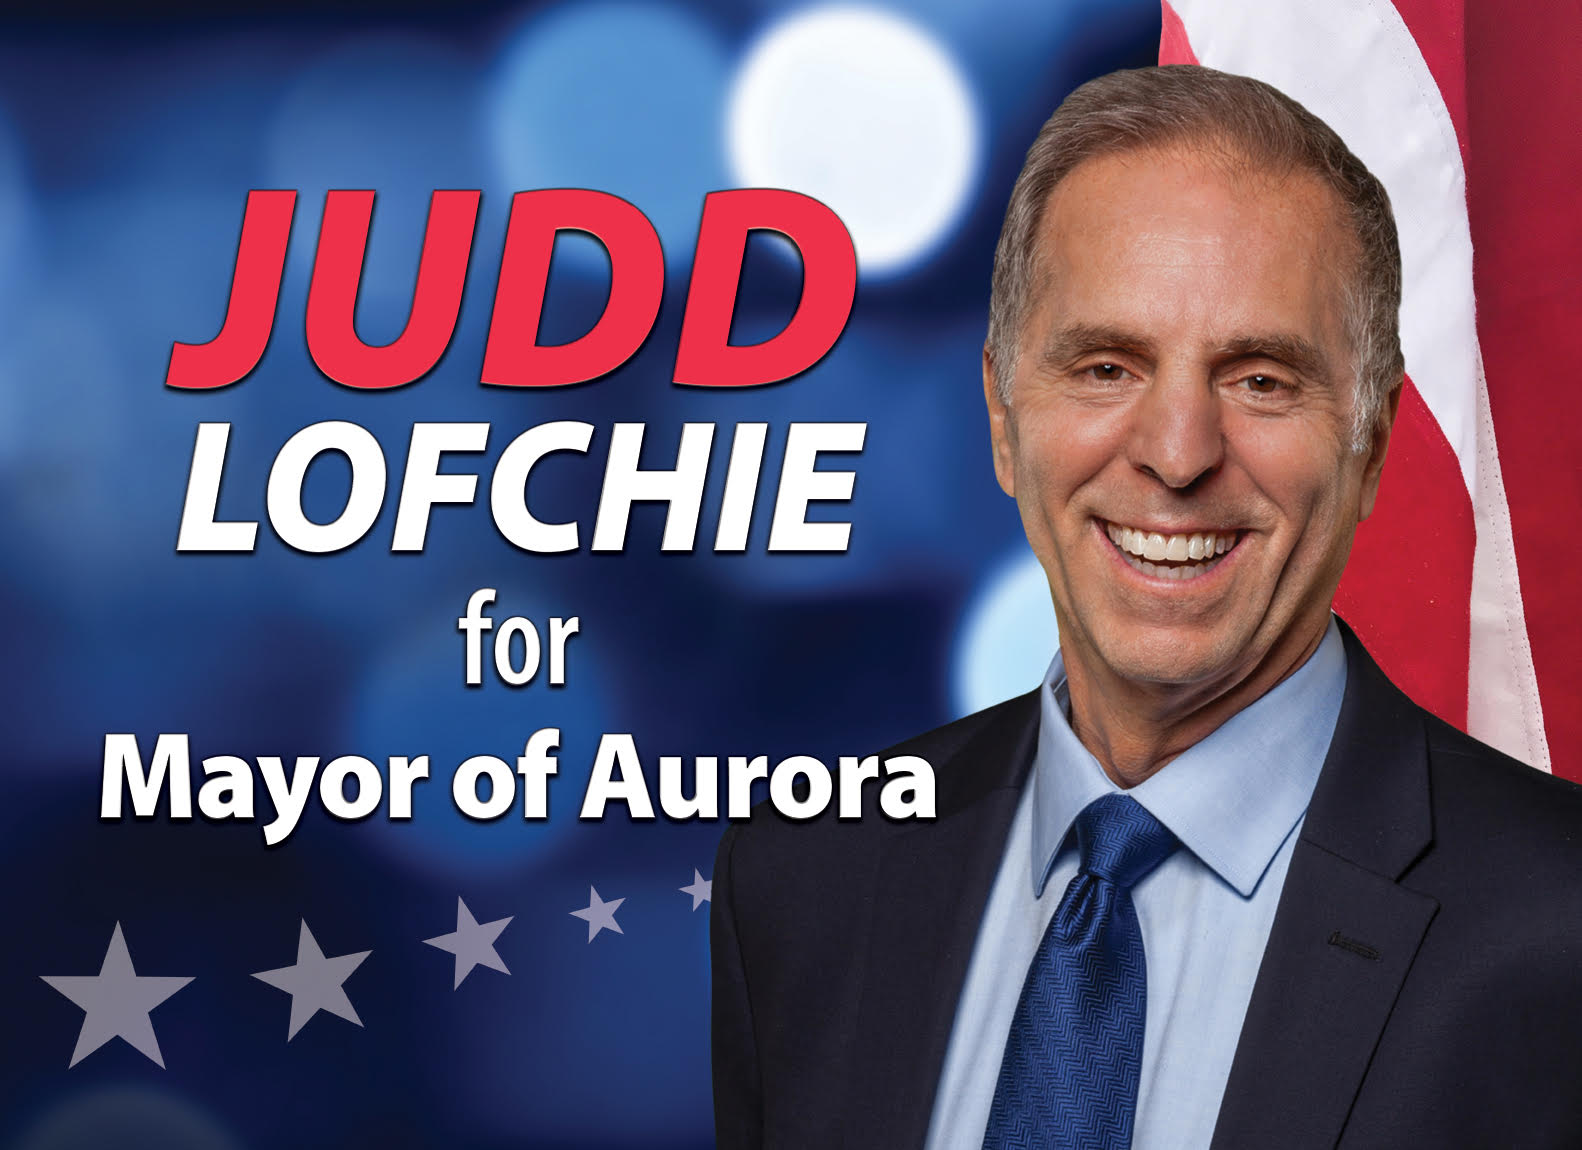 JUDD LOFCHIE FOR MAYOR OF AURORA FUNDRAISER